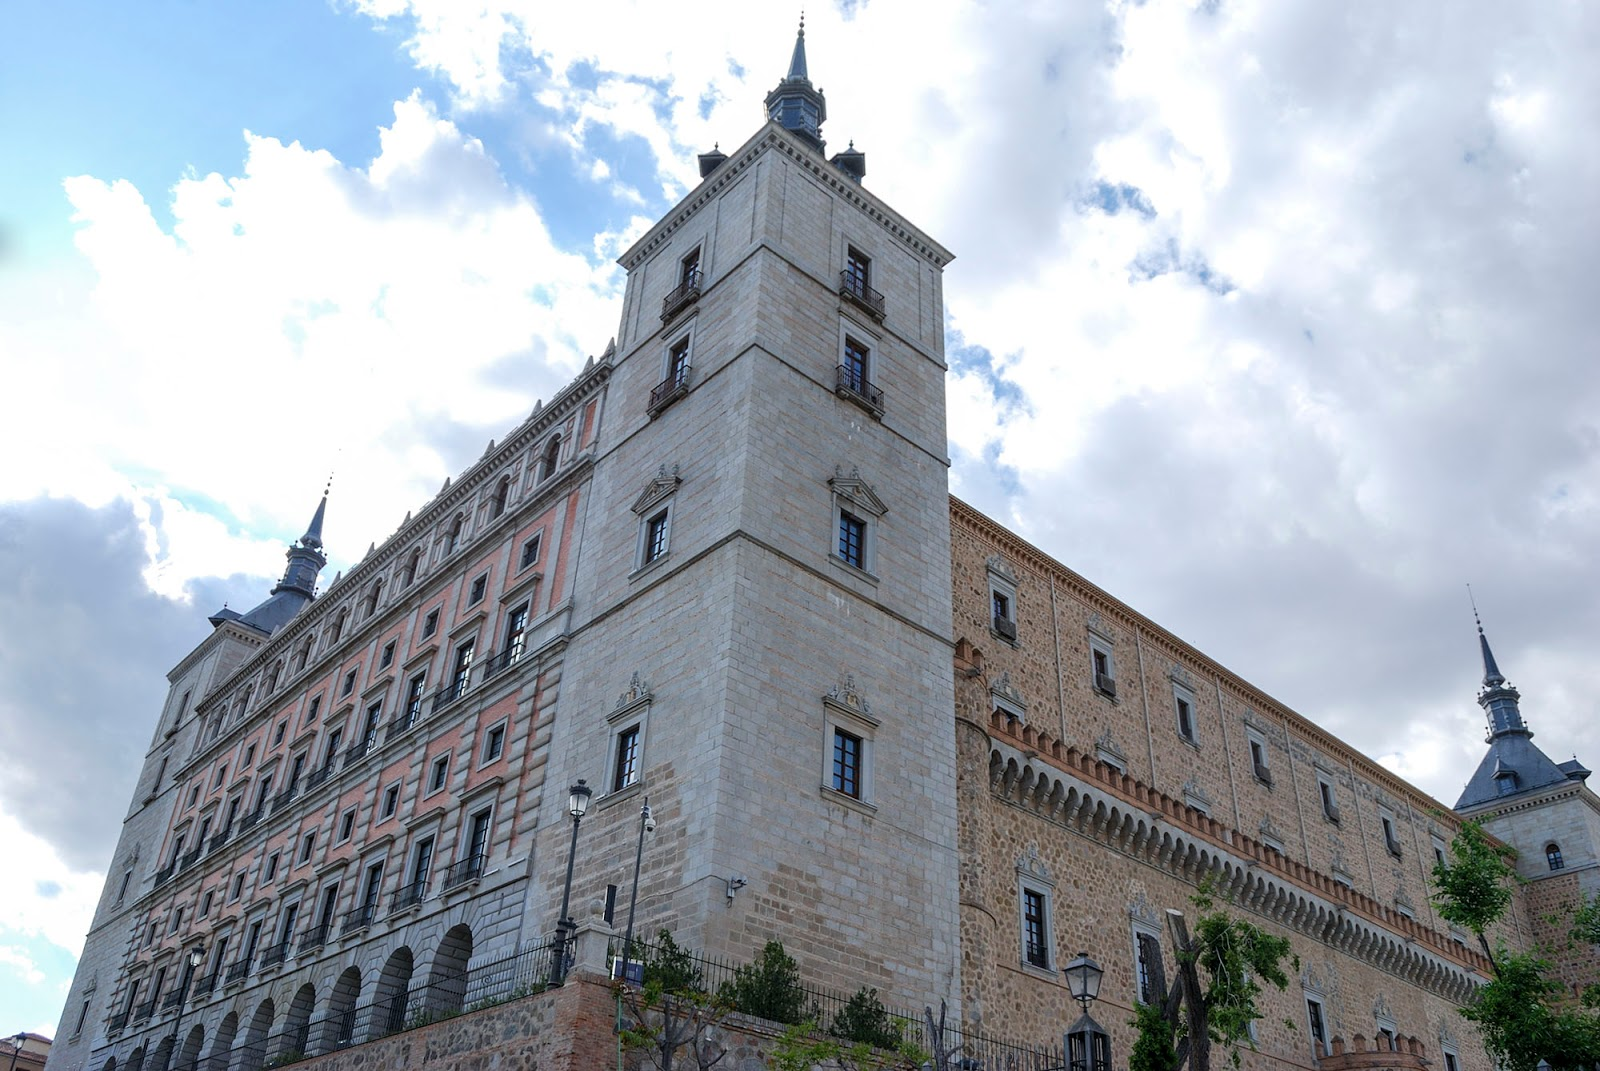 fortress palace alcazar toledo spain landmark history travel guide tourism day trip itinerary